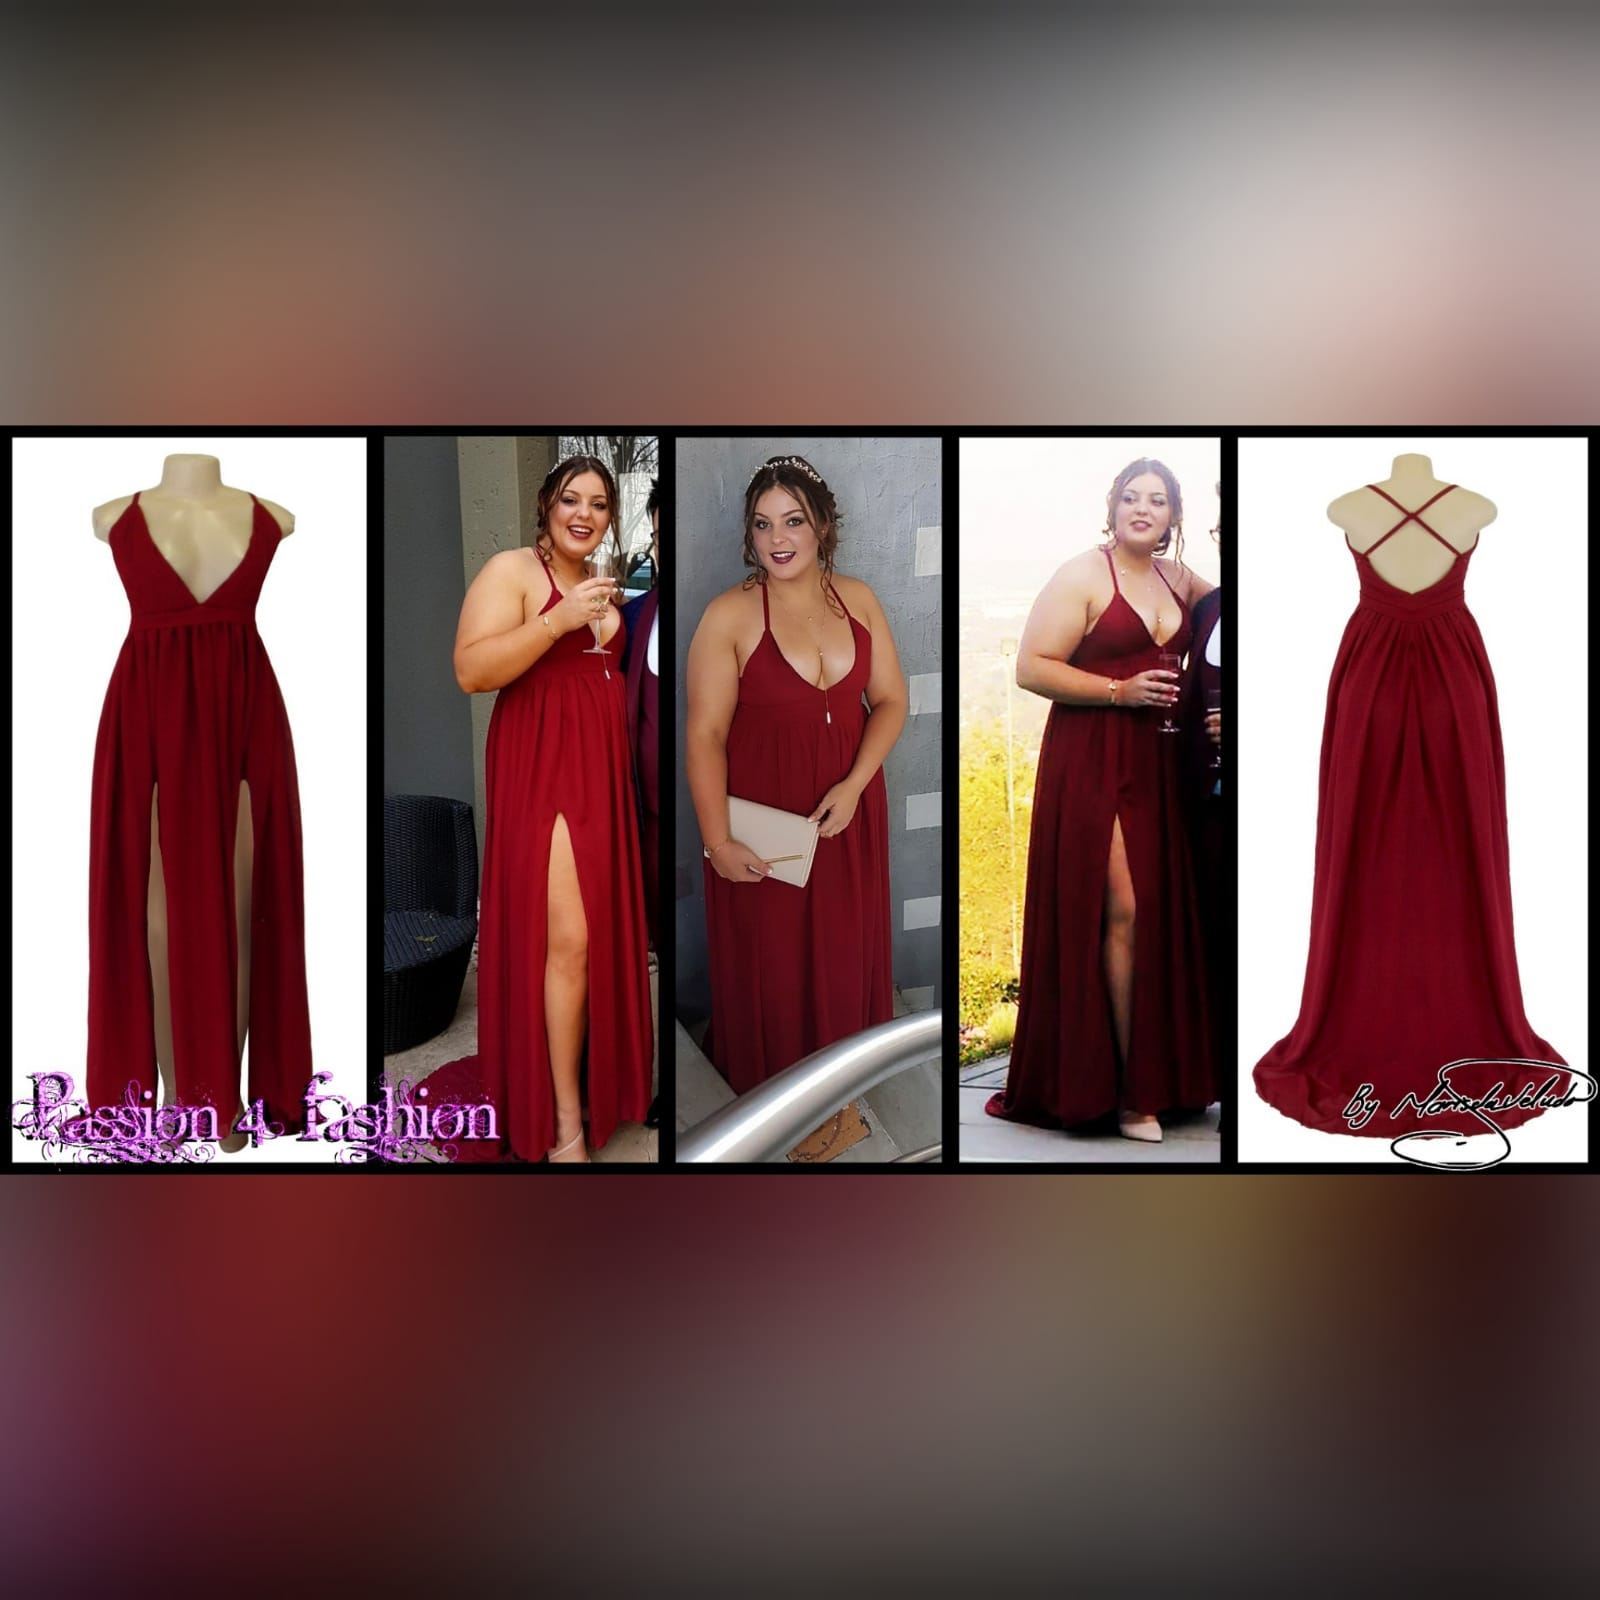 Red long chiffon formal dress 3 red long chiffon formal dress with a v neckline, 2 high slits, rounded open back with thin crossed shoulder straps.